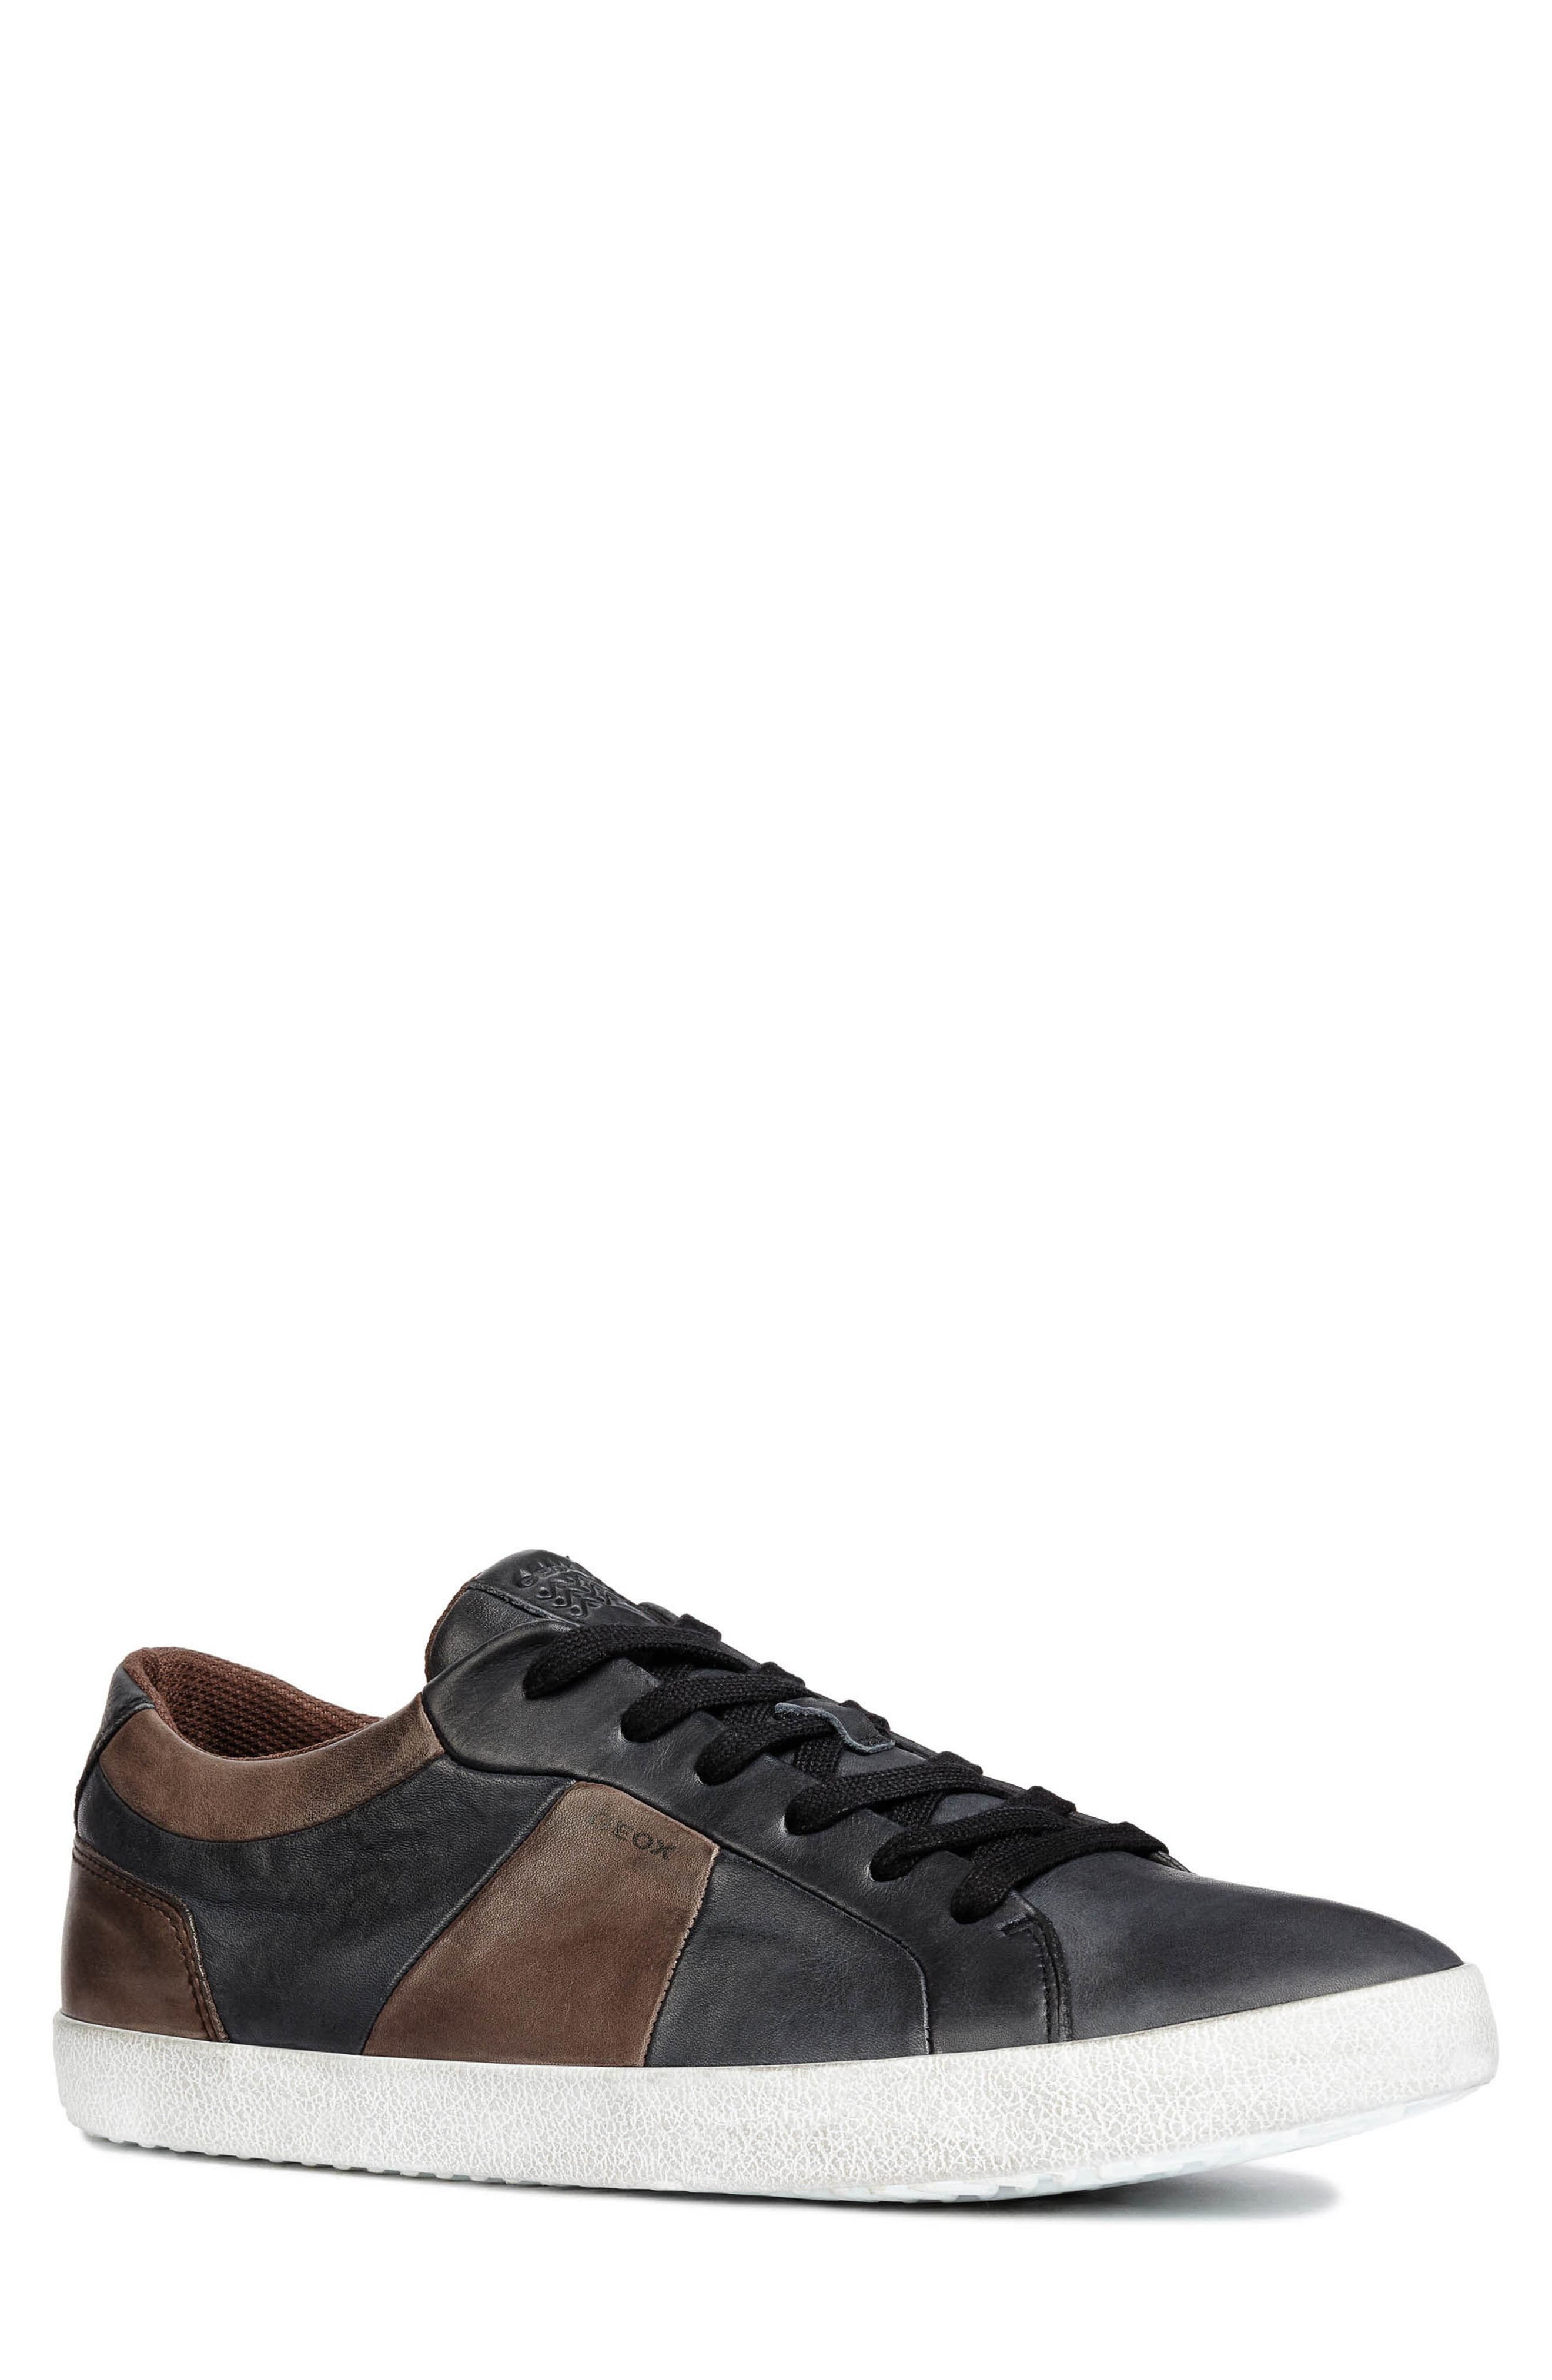 Smart 85 Low Top Sneaker,                             Main thumbnail 1, color,                             BLACK/ COFFEE LEATHER